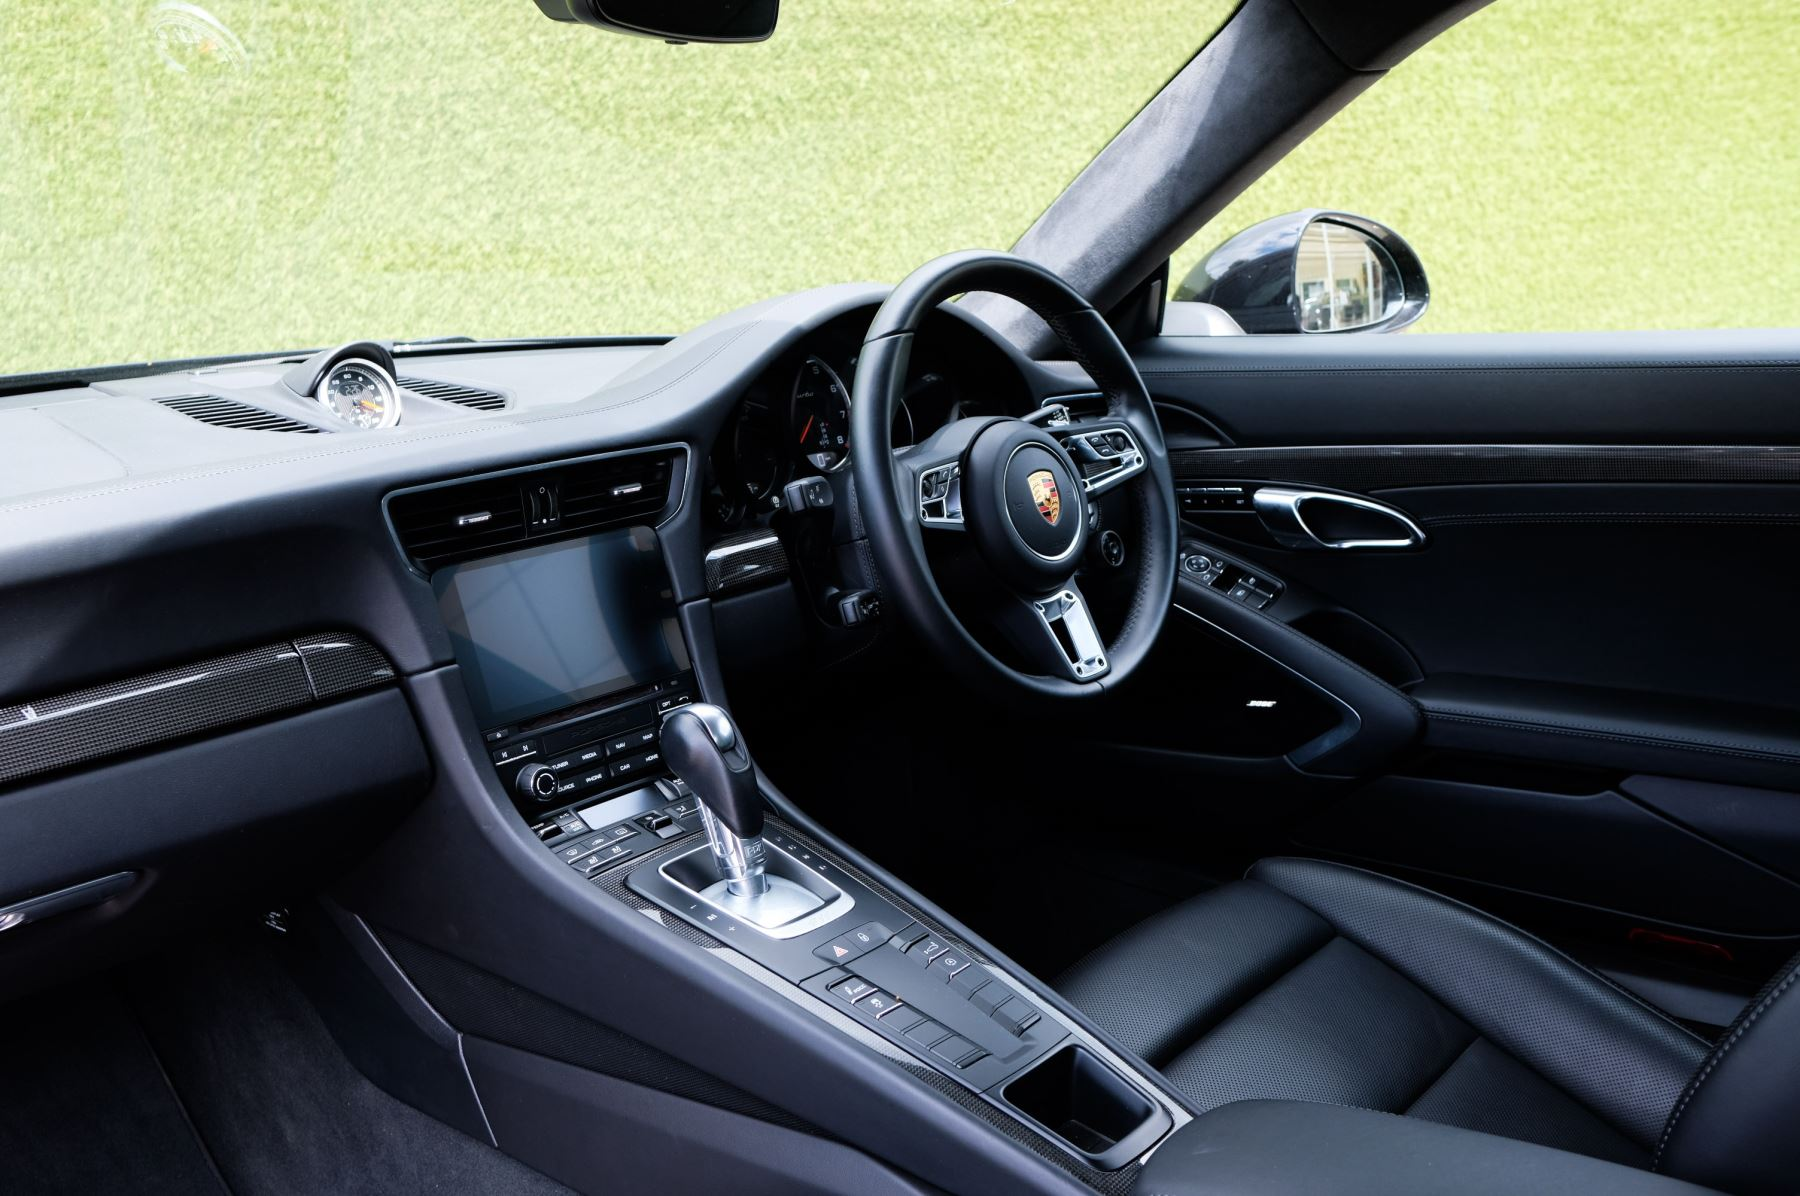 Porsche 911 PDK - Carbon interior package - Privacy Glass - 20 inch Sport Classic wheels image 18